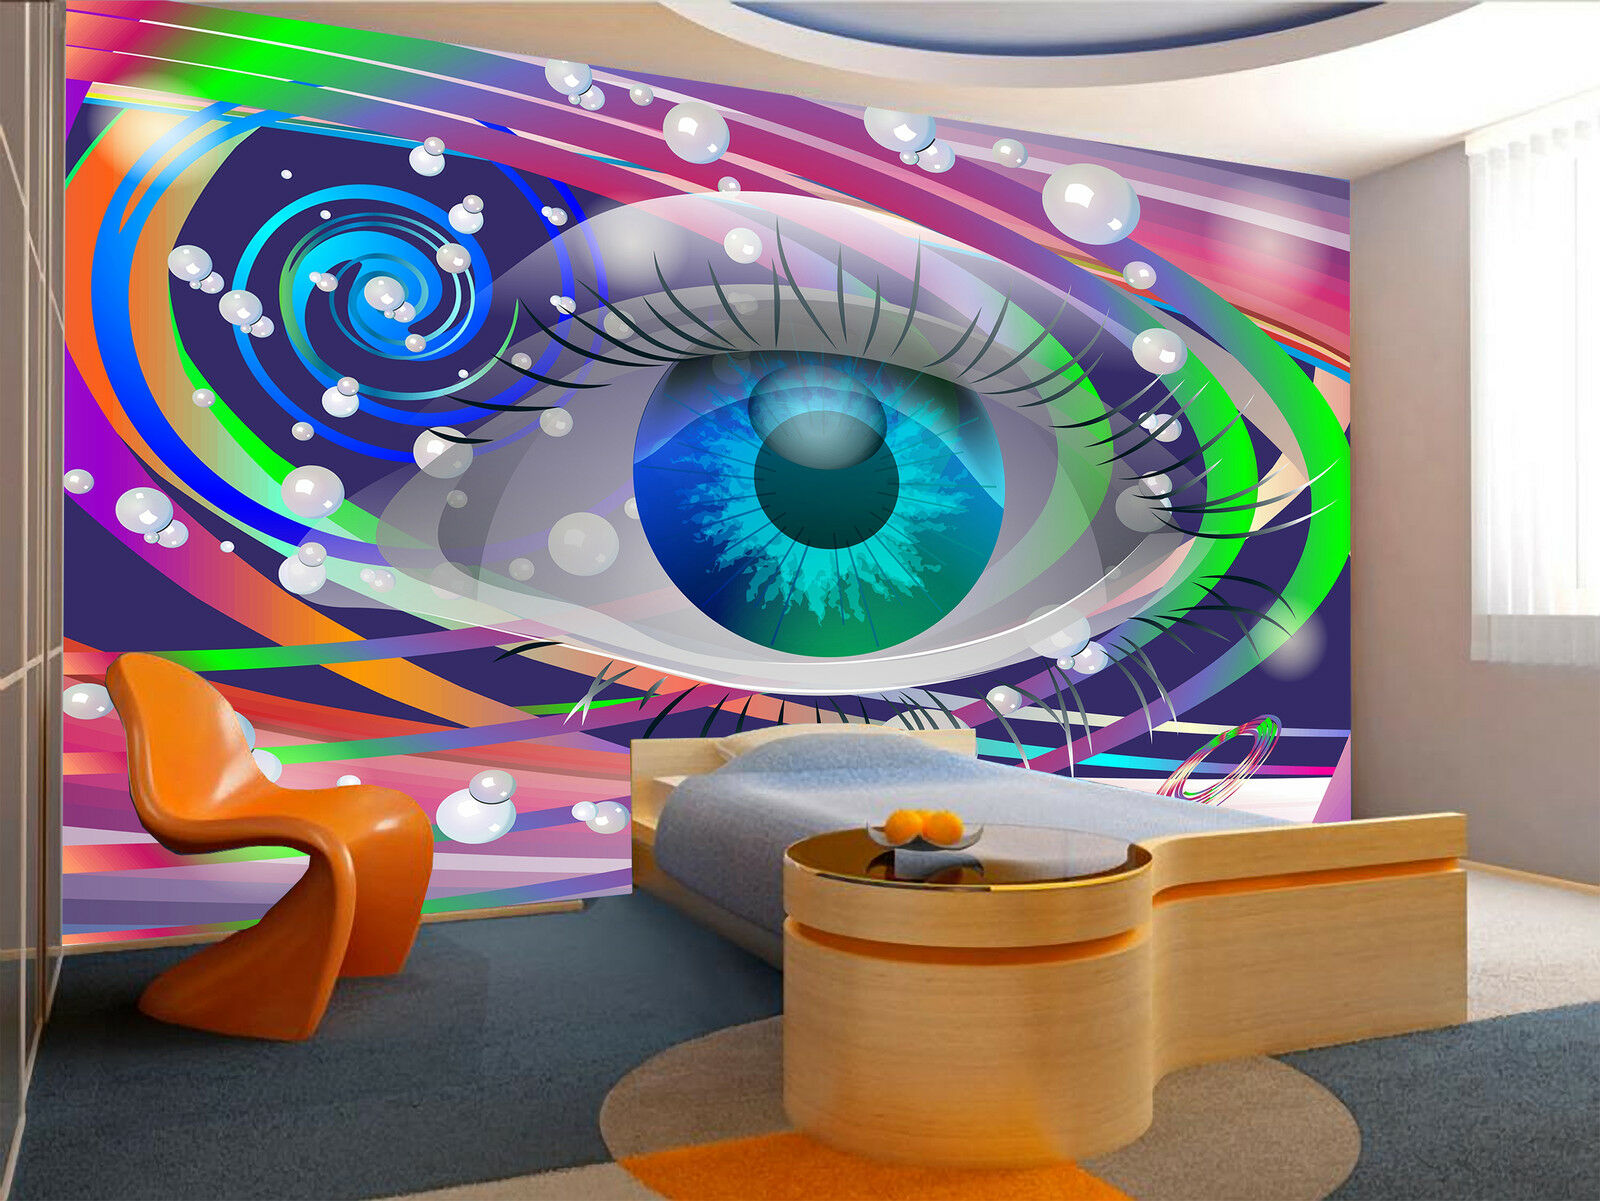 Space Eye Wall Mural Photo Wallpaper GIANT DECOR Paper Poster Free Paste